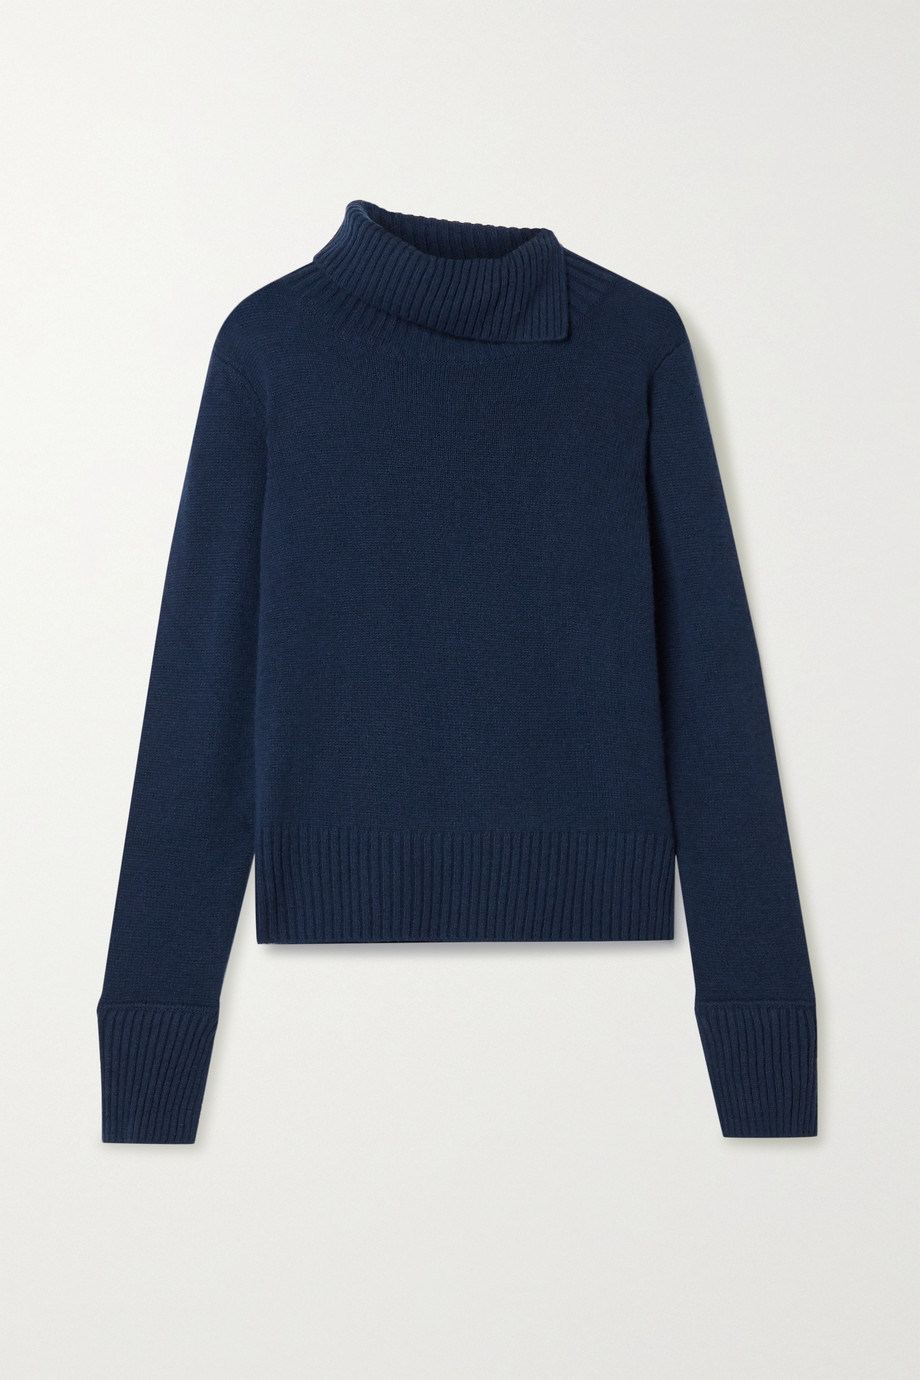 Jason Wu Pleated satin-trimmed cashmere turtleneck sweater